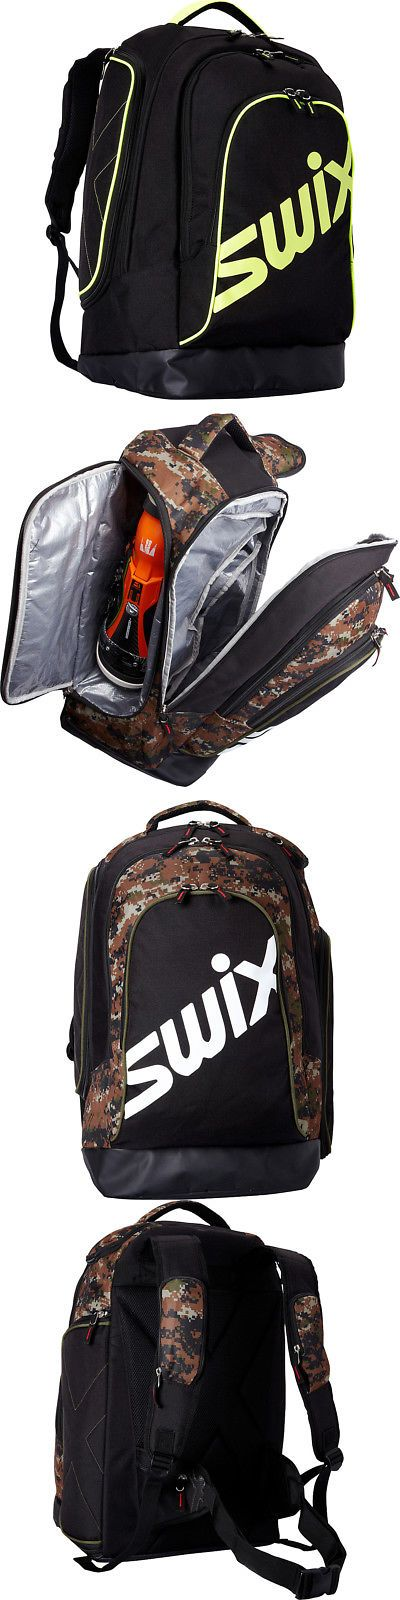 Bags and Backpacks 21229: Swix Budapack Ski Boot Bag 3 Colors Ski And Snowboard Bag New -> BUY IT NOW ONLY: $121.99 on eBay!